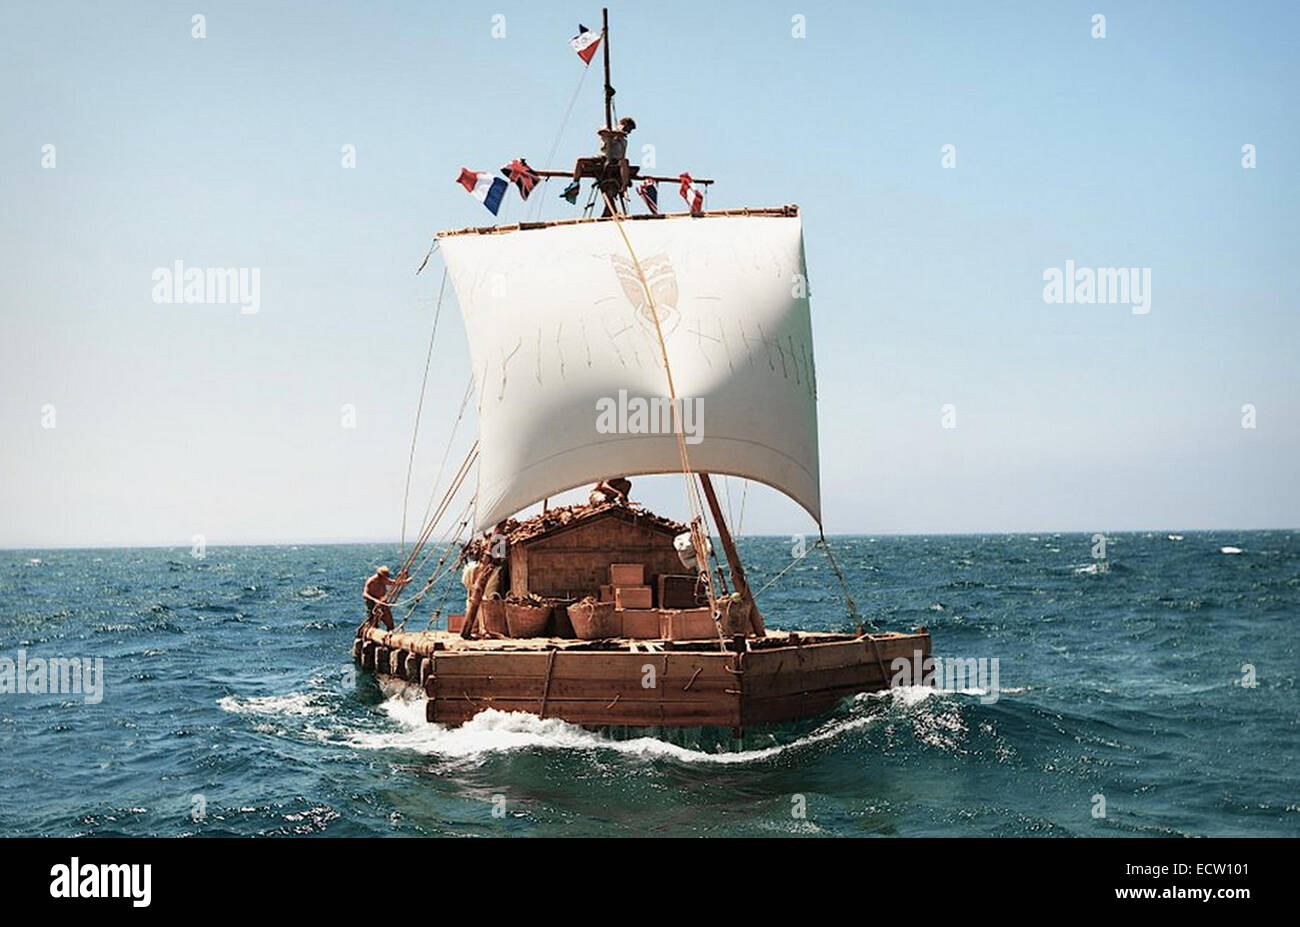 KON-TIKI 2013 Recorded picture Company film - Stock Image